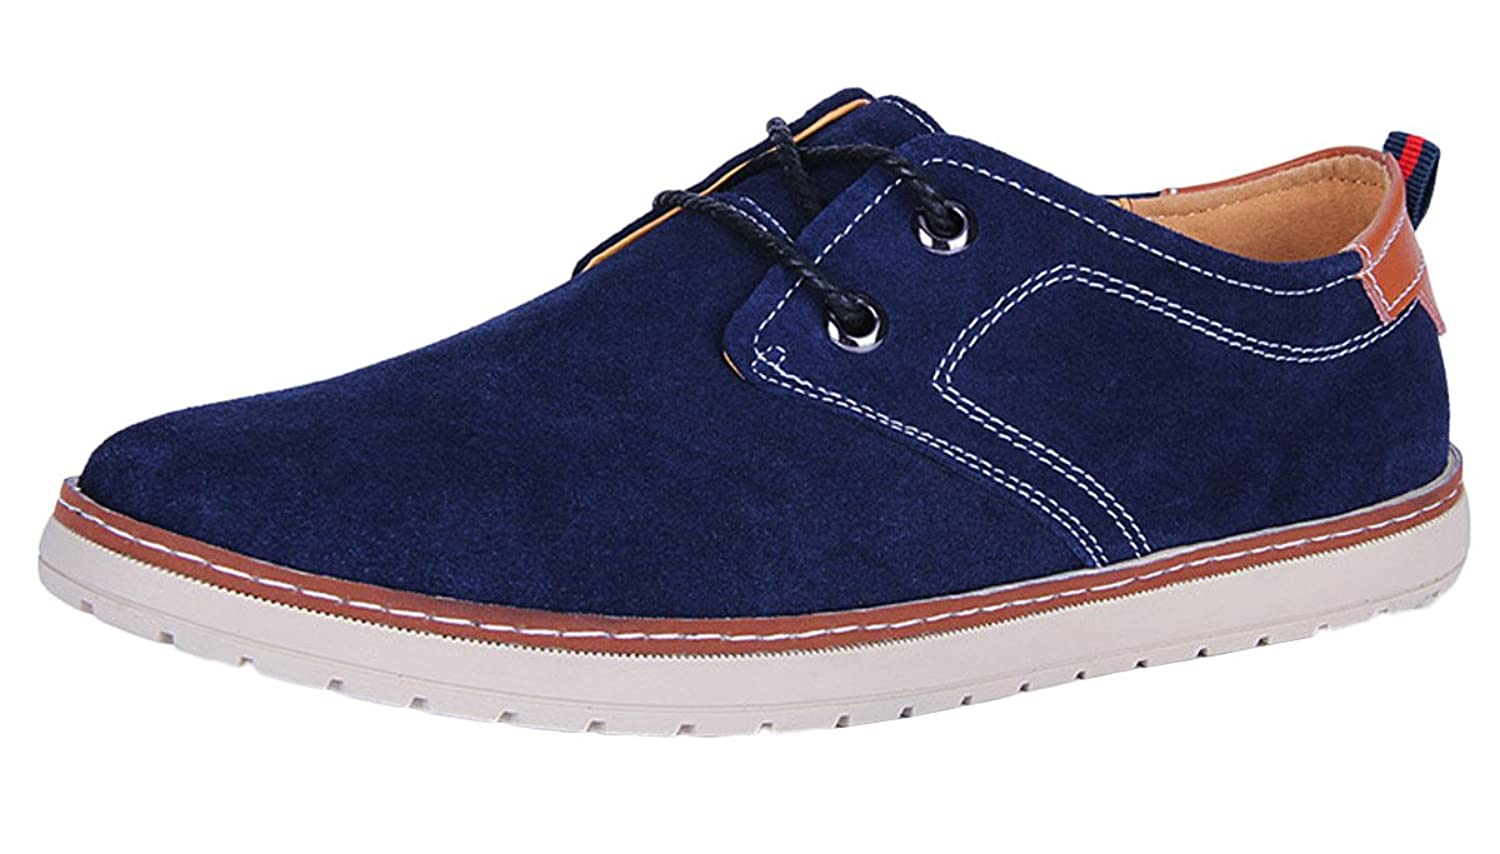 Passionow Men's Casual Dress Lace-up Suede Leather Oxfords